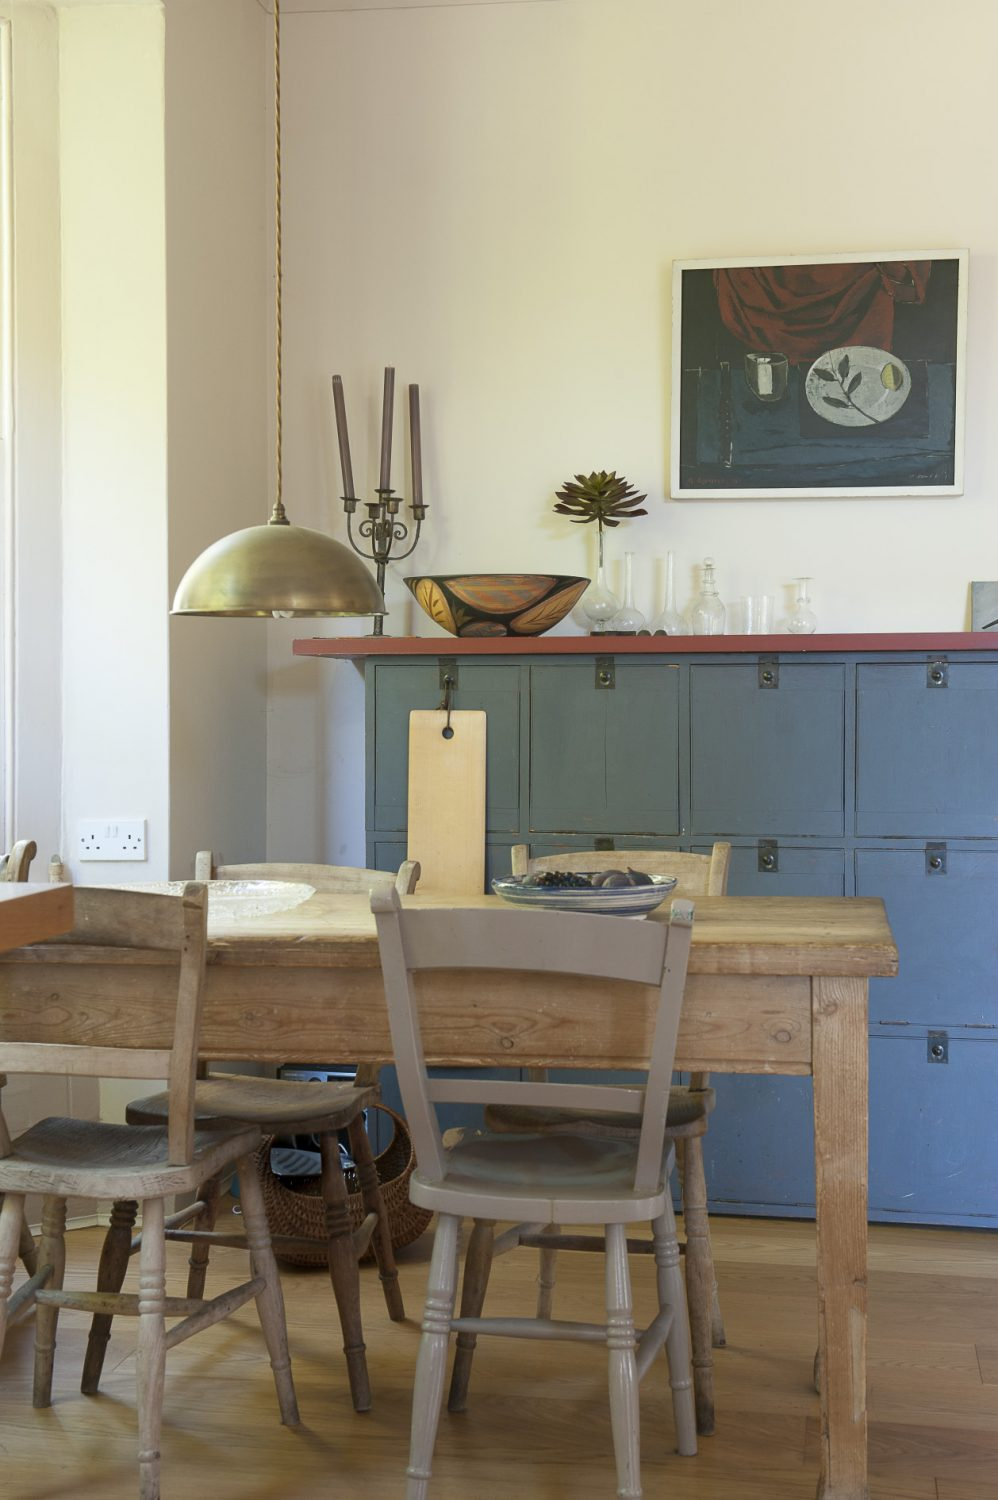 A rustic stripped-wood table sits in the corner of the large kitchen-cum-dining room, with side cupboards painted in a strong blue to complement the colour of the 'unfitted' kitchen